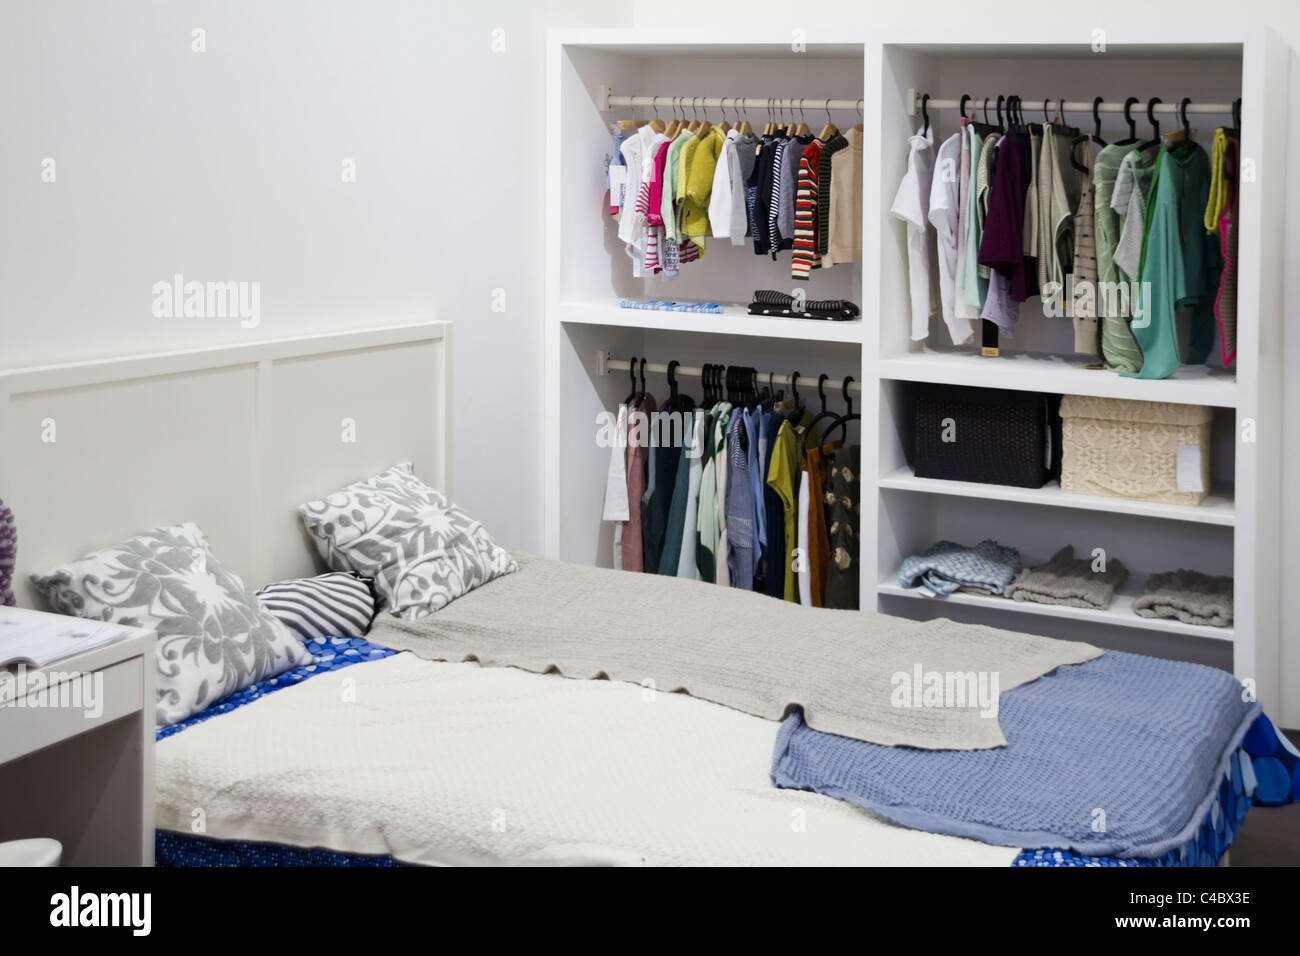 bedroom with large bed and garderobe - Stock Image